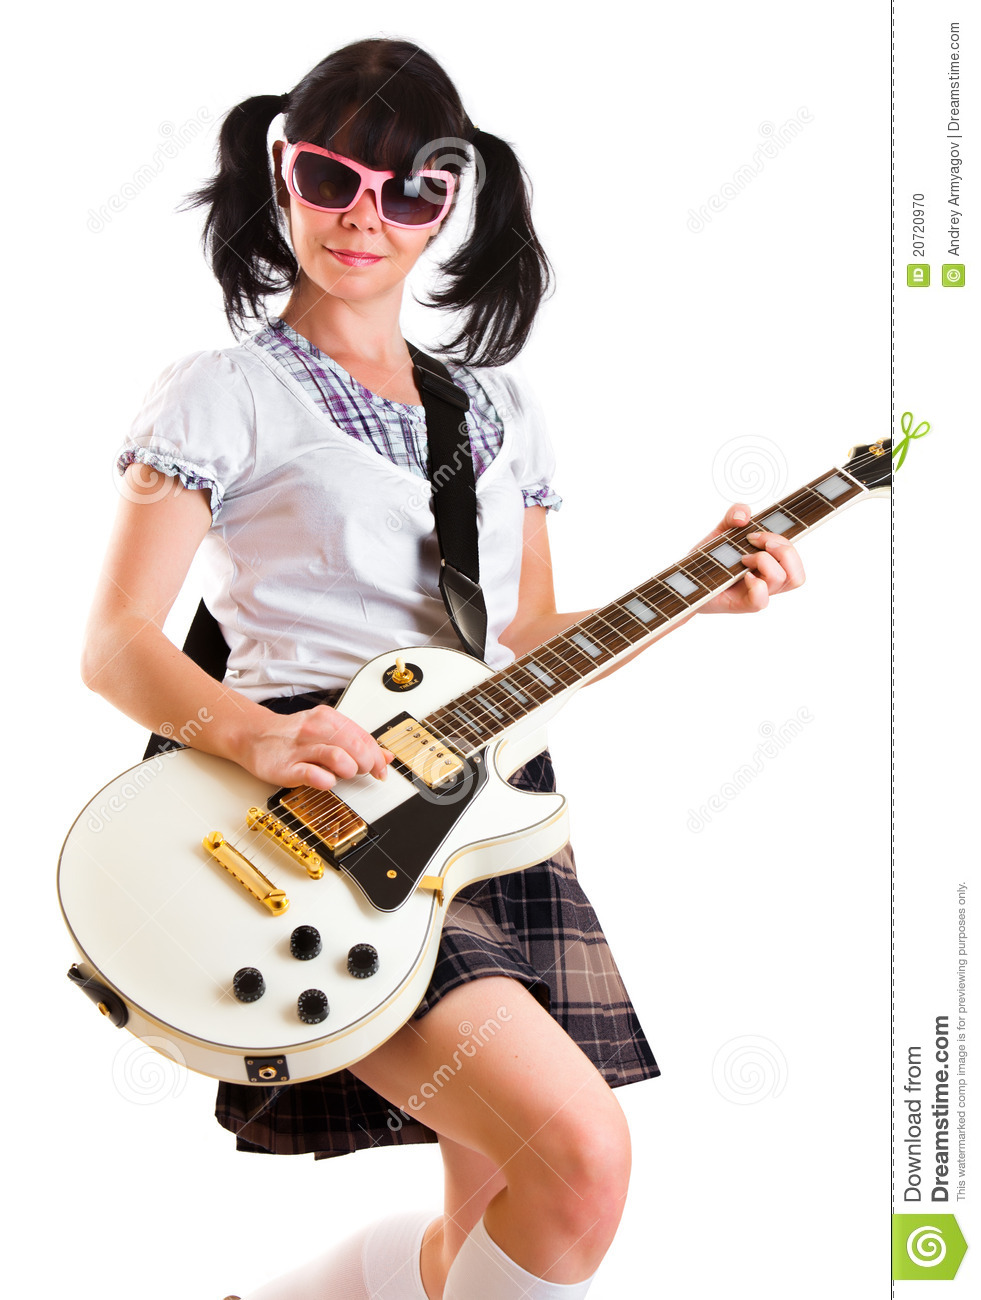 girl with a guitar stock photo image 20720970. Black Bedroom Furniture Sets. Home Design Ideas